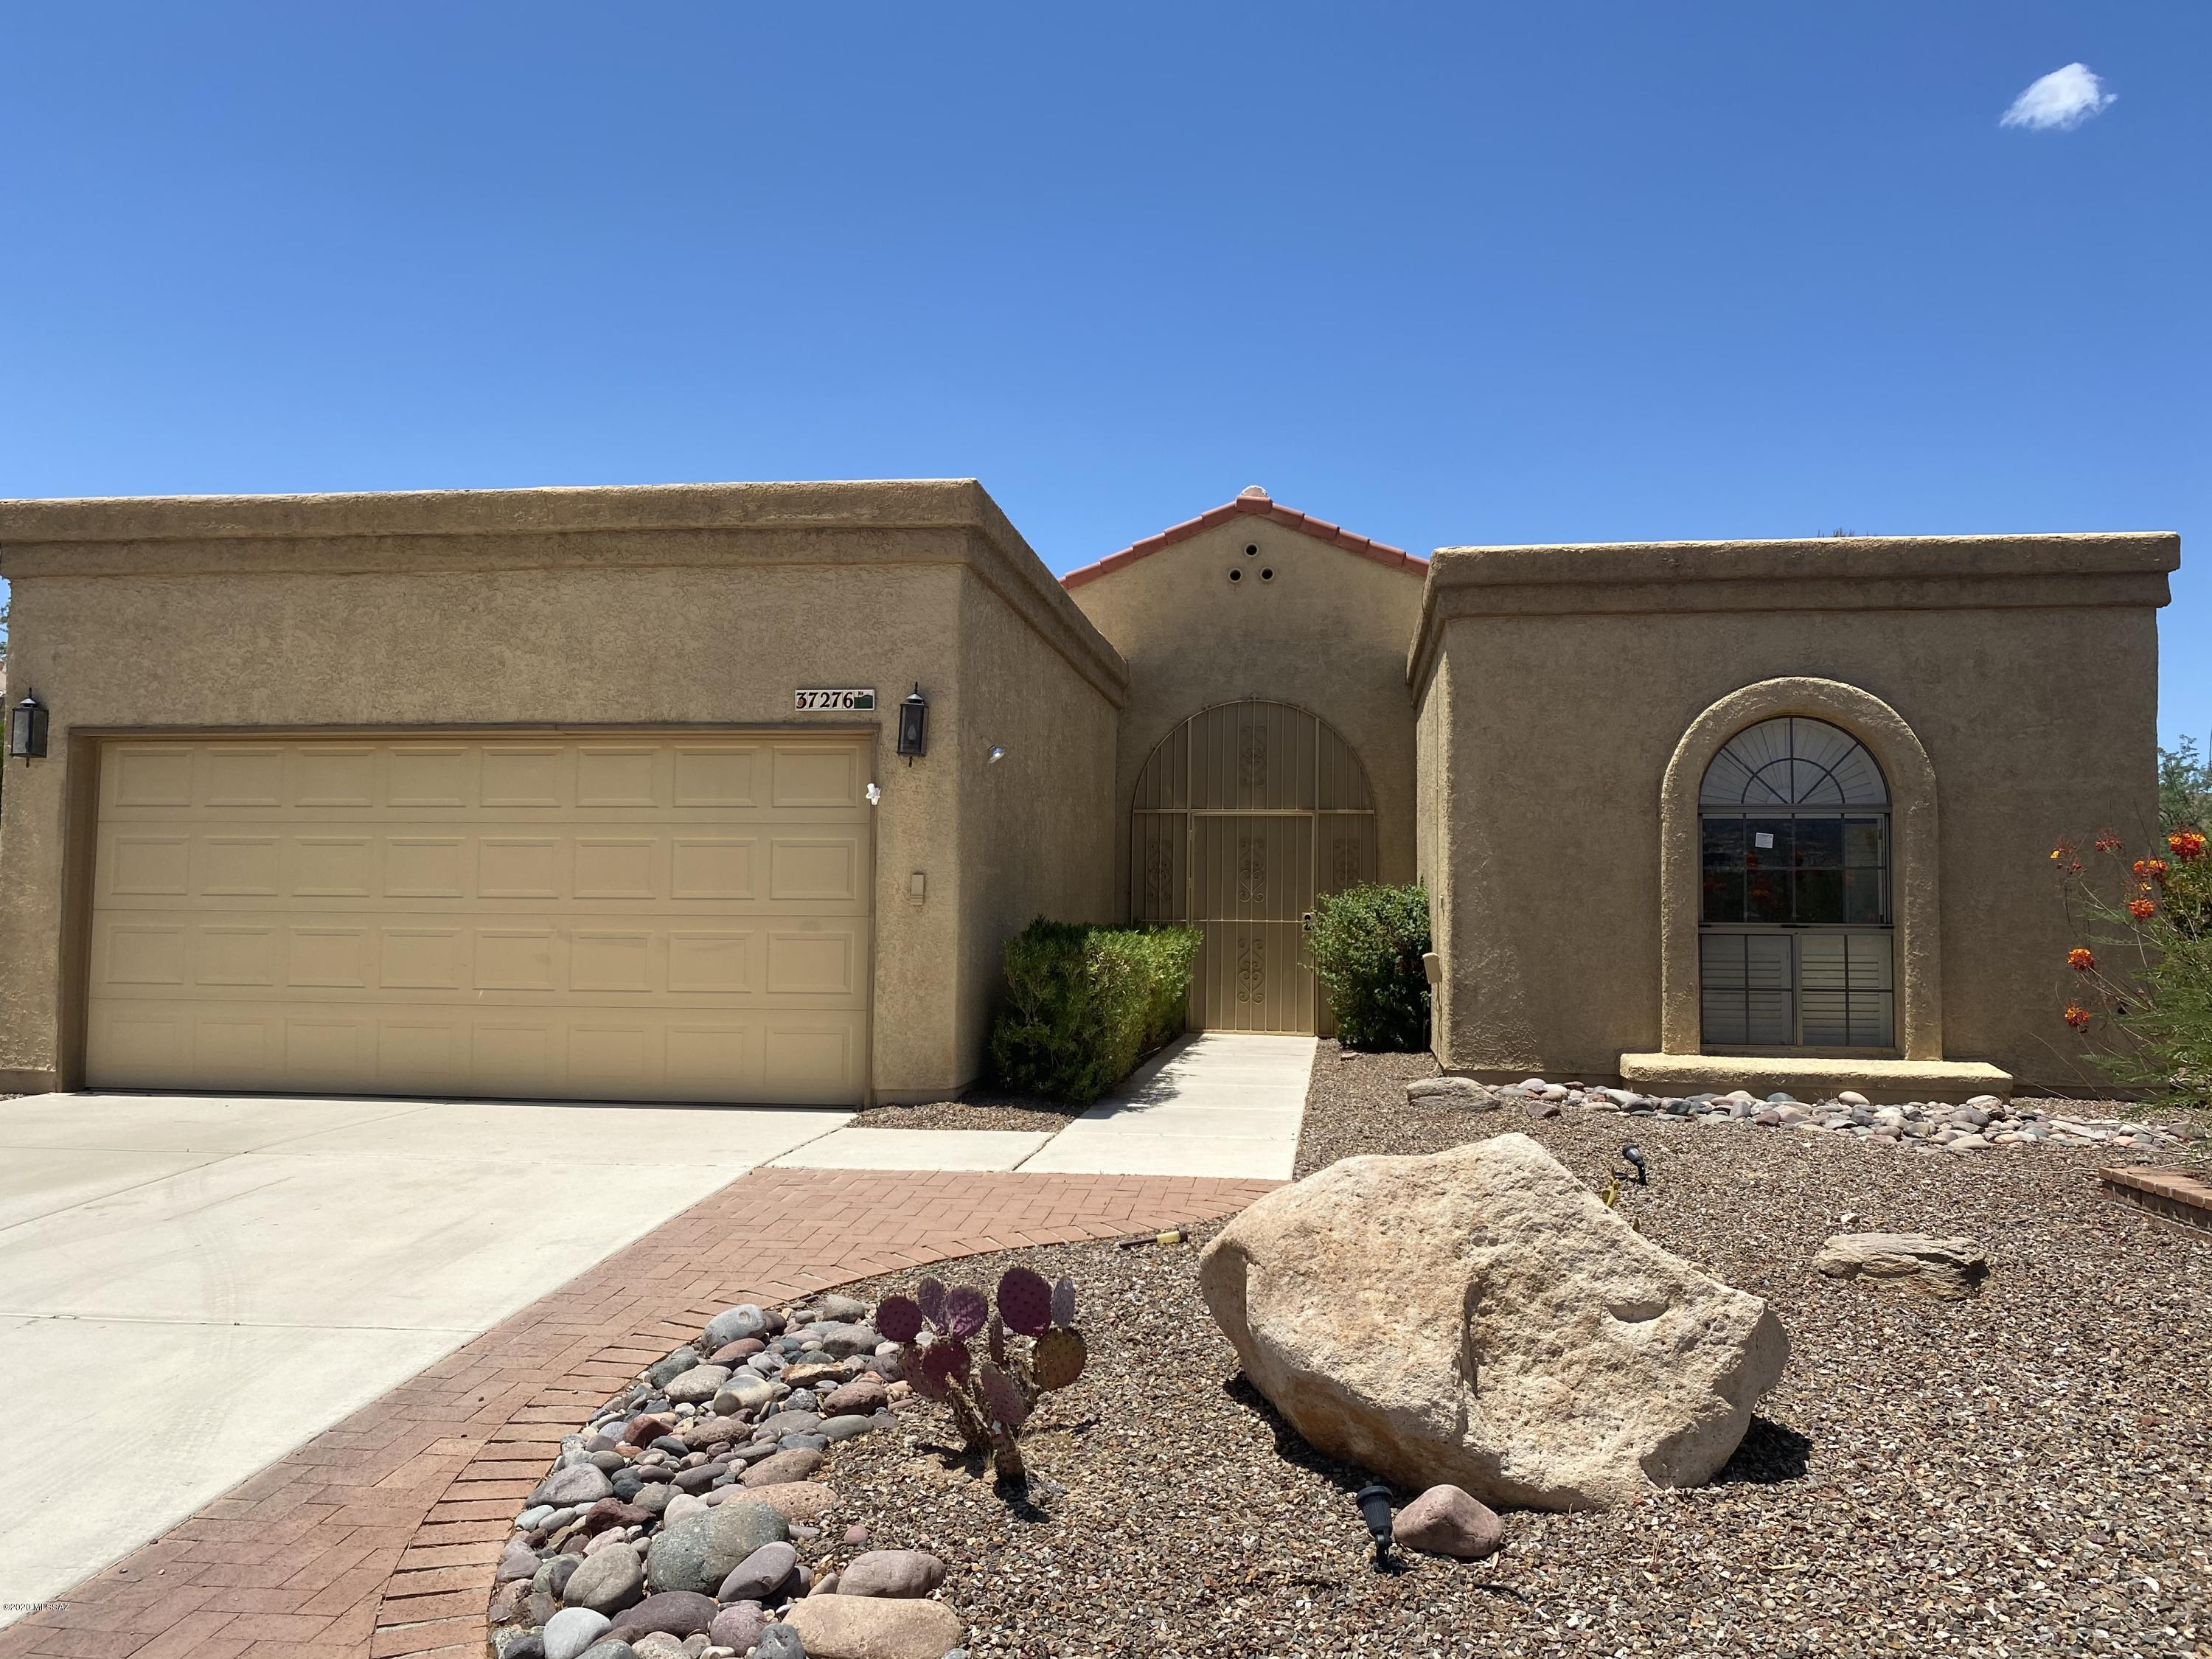 Photo of 37276 S Blackfoot Drive, Tucson, AZ 85739